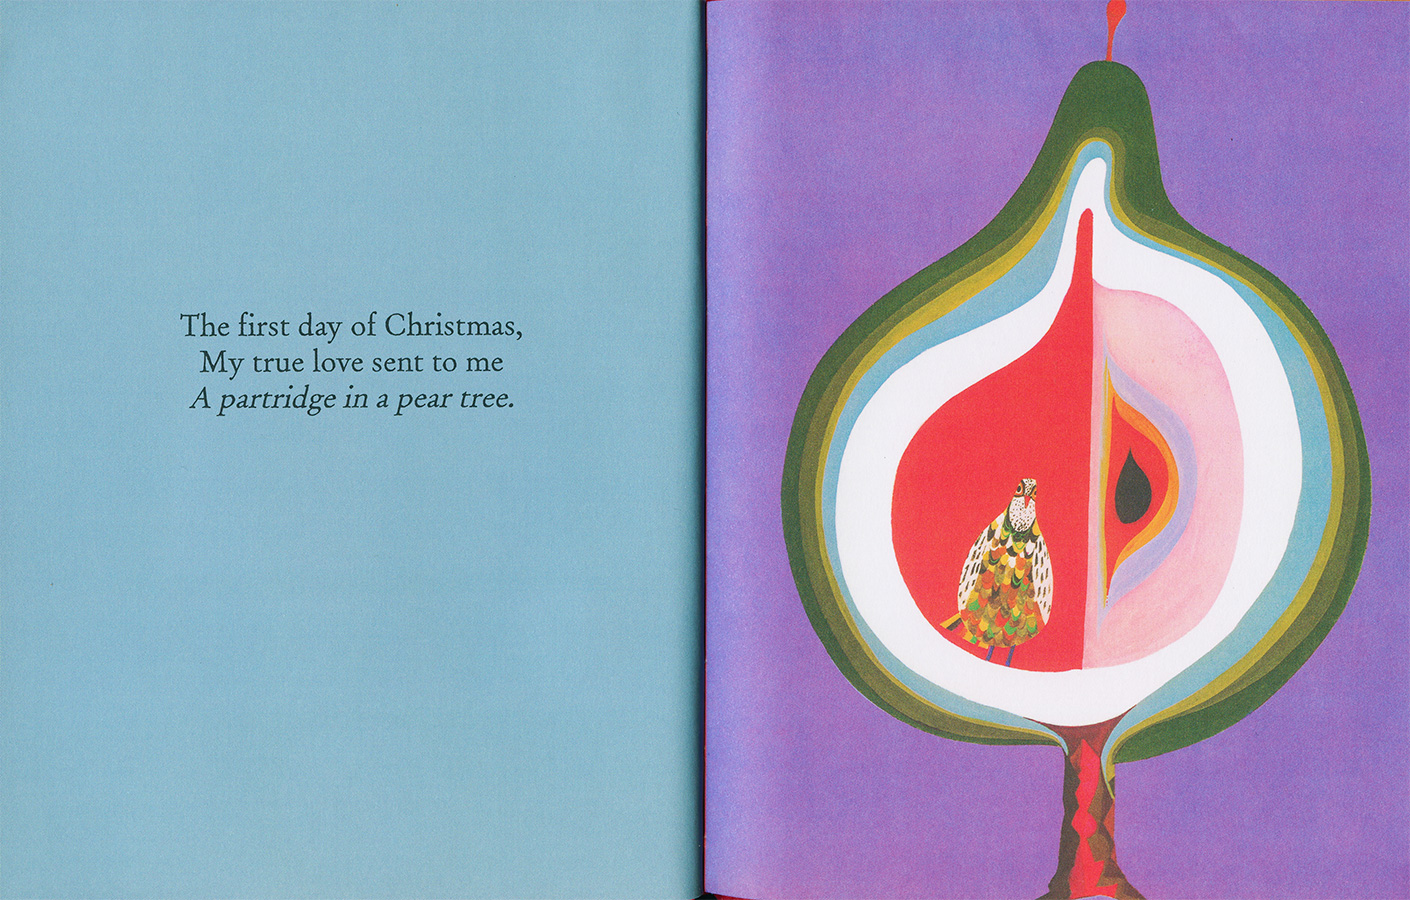 The-first-day-of-Christmas-from-The-Twelve-Days-of-Christmas-by-Brian-Wildsmith.jpg